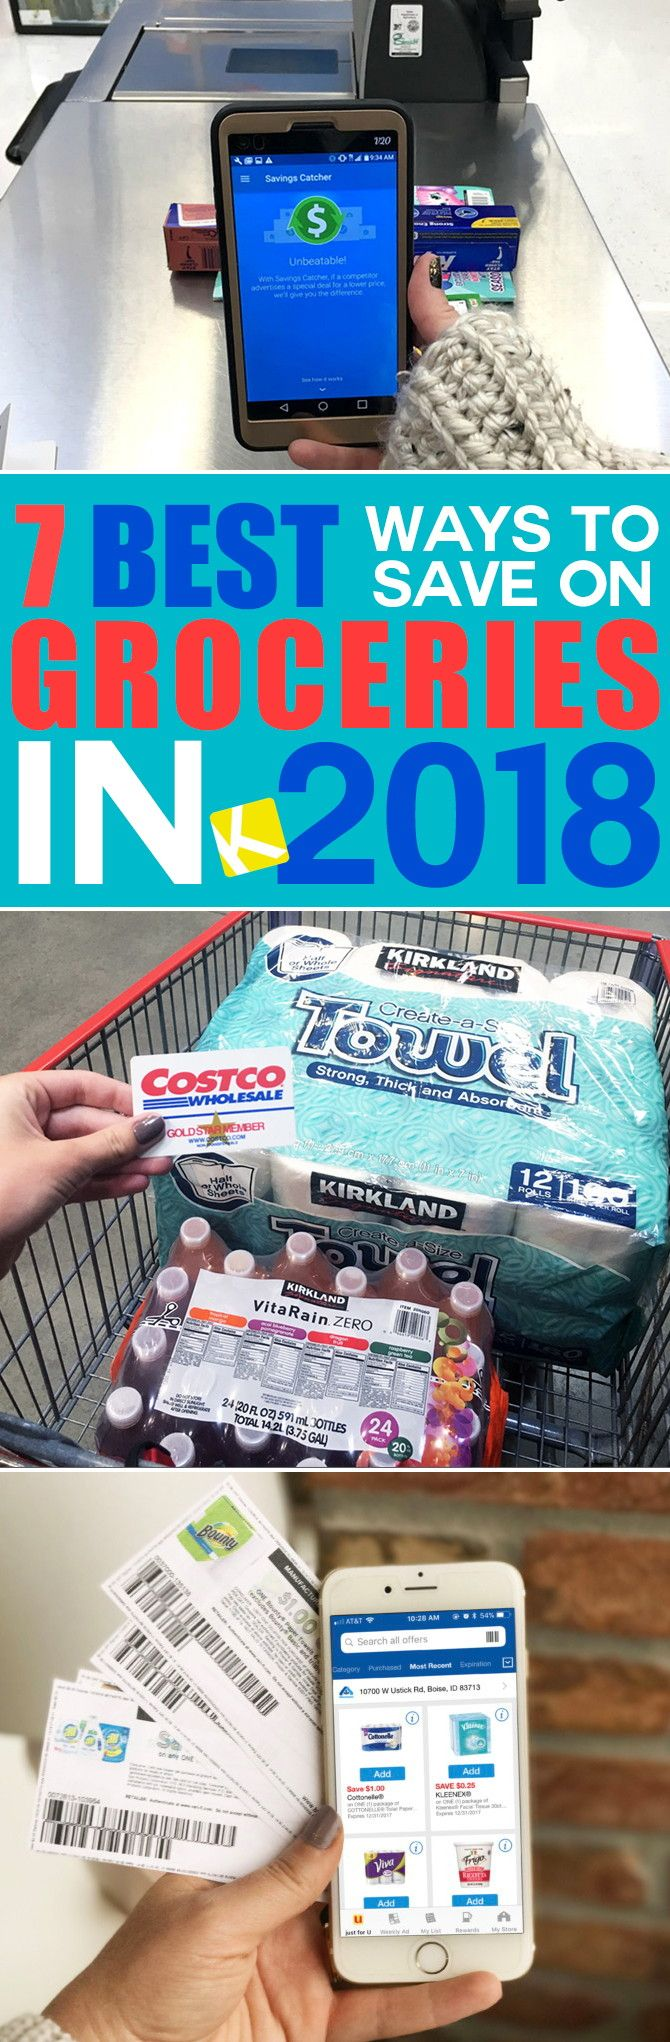 If you're anything like me, your New Year's resolutions include saving money in your grocery budget. Here's how to do it in 2018. . .